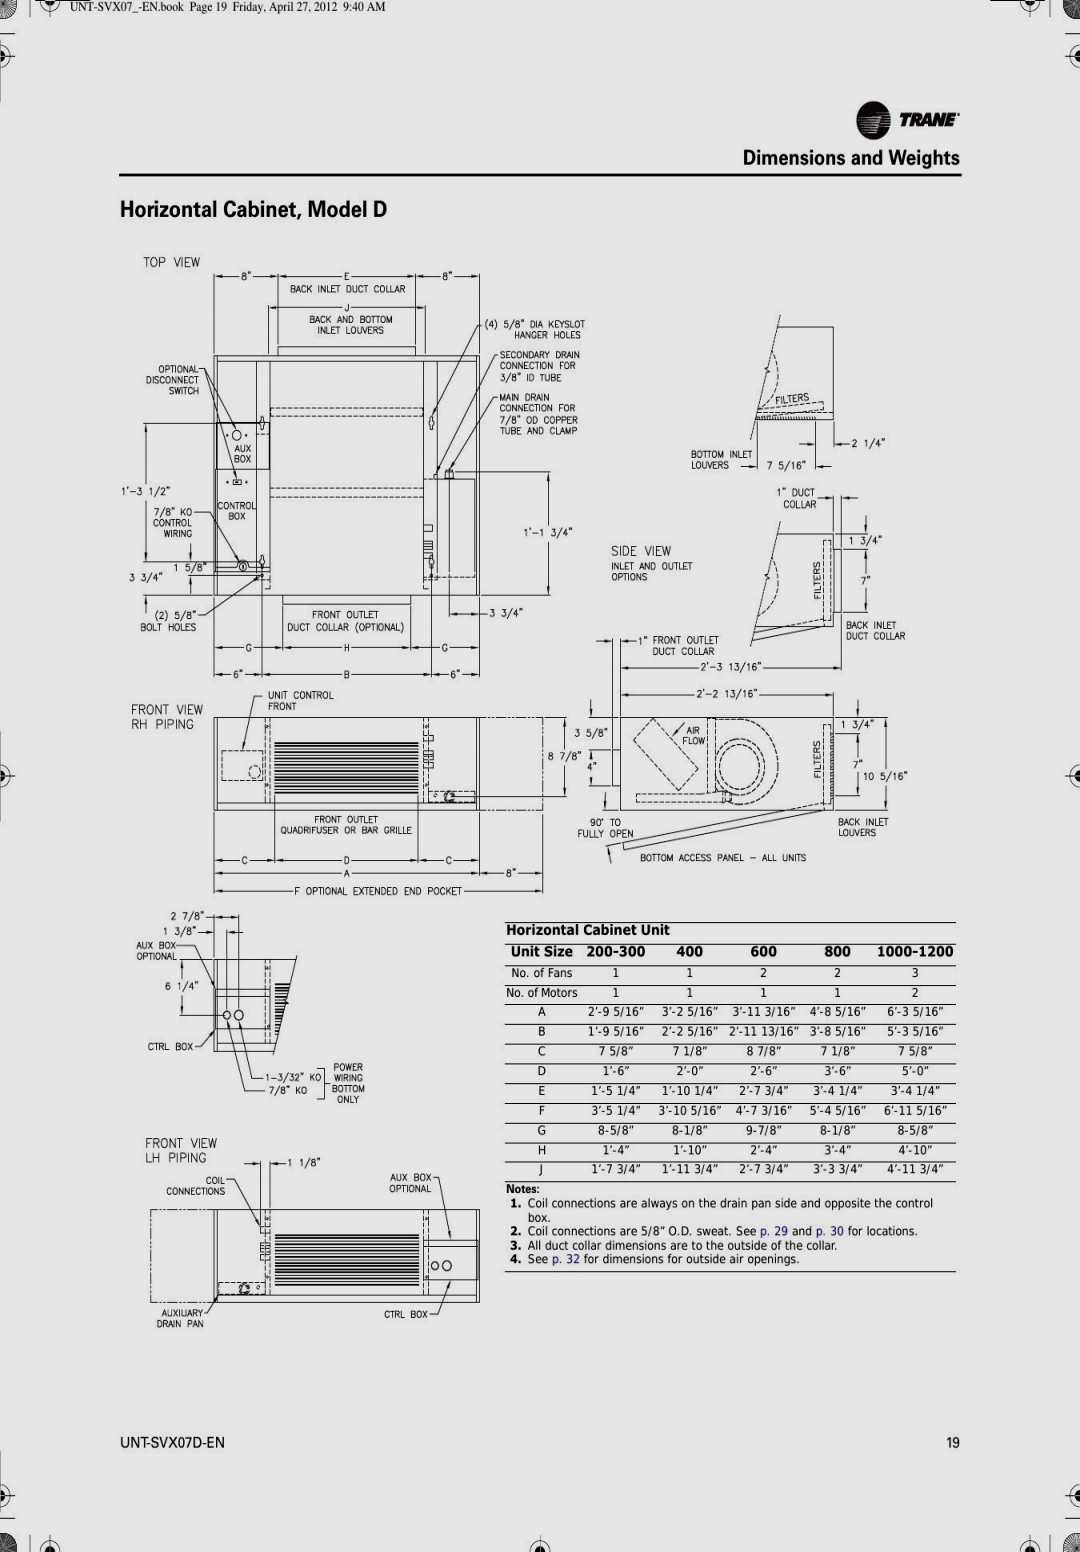 Aquastat Wiring Diagrams 2 Thermostats | Wiring Diagram - Honeywell Aquastat Wiring Diagram